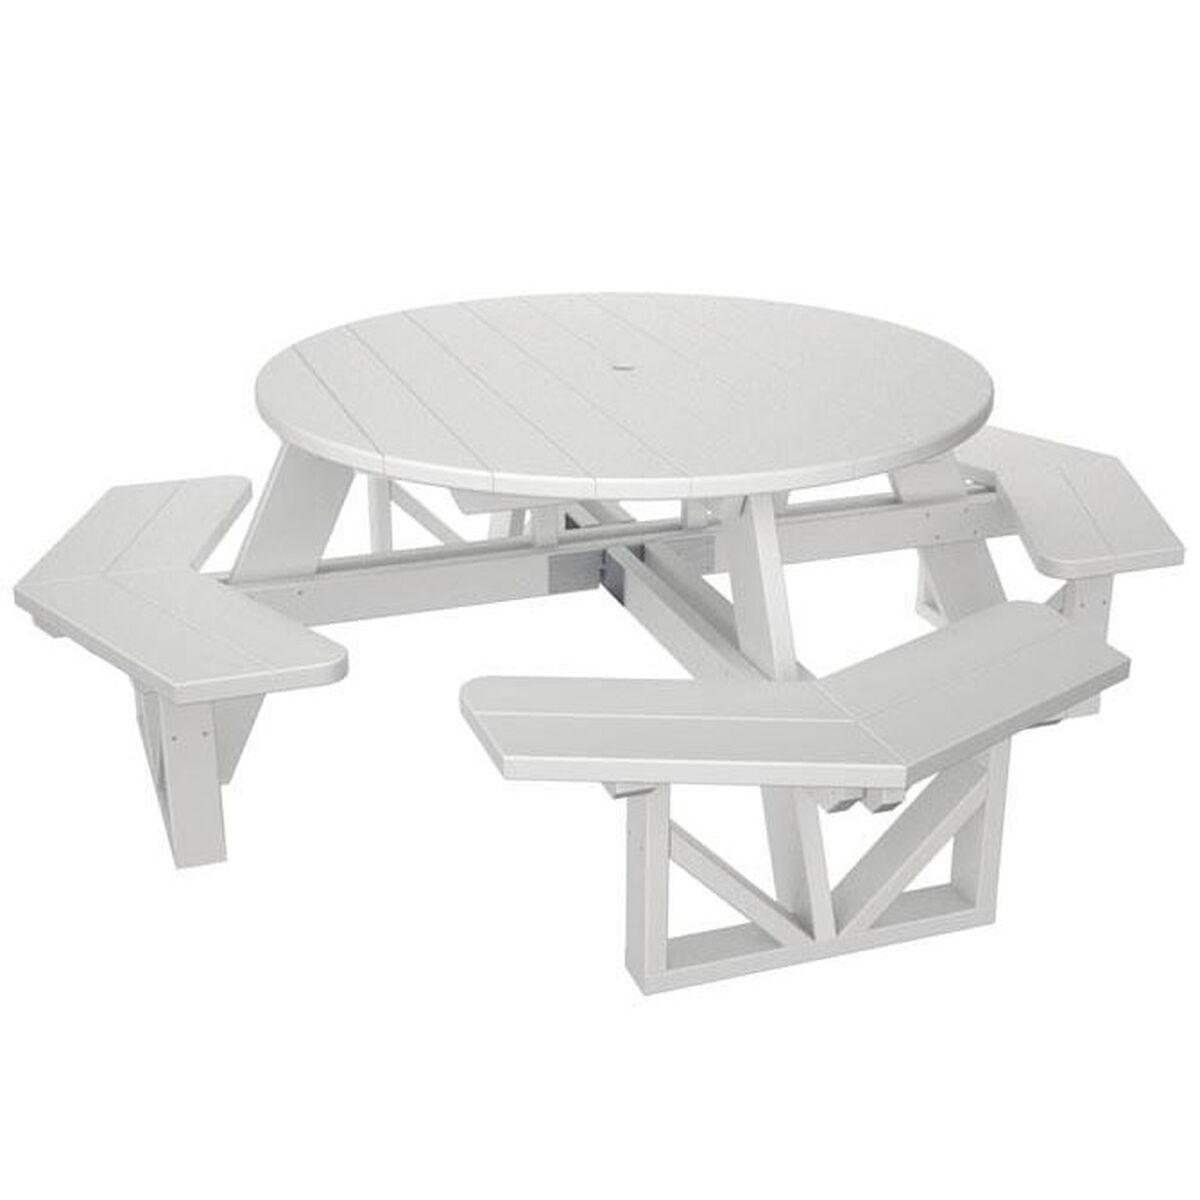 White Octagon Park Table PHWH RestaurantFurnitureLesscom - Octagon picnic table for sale